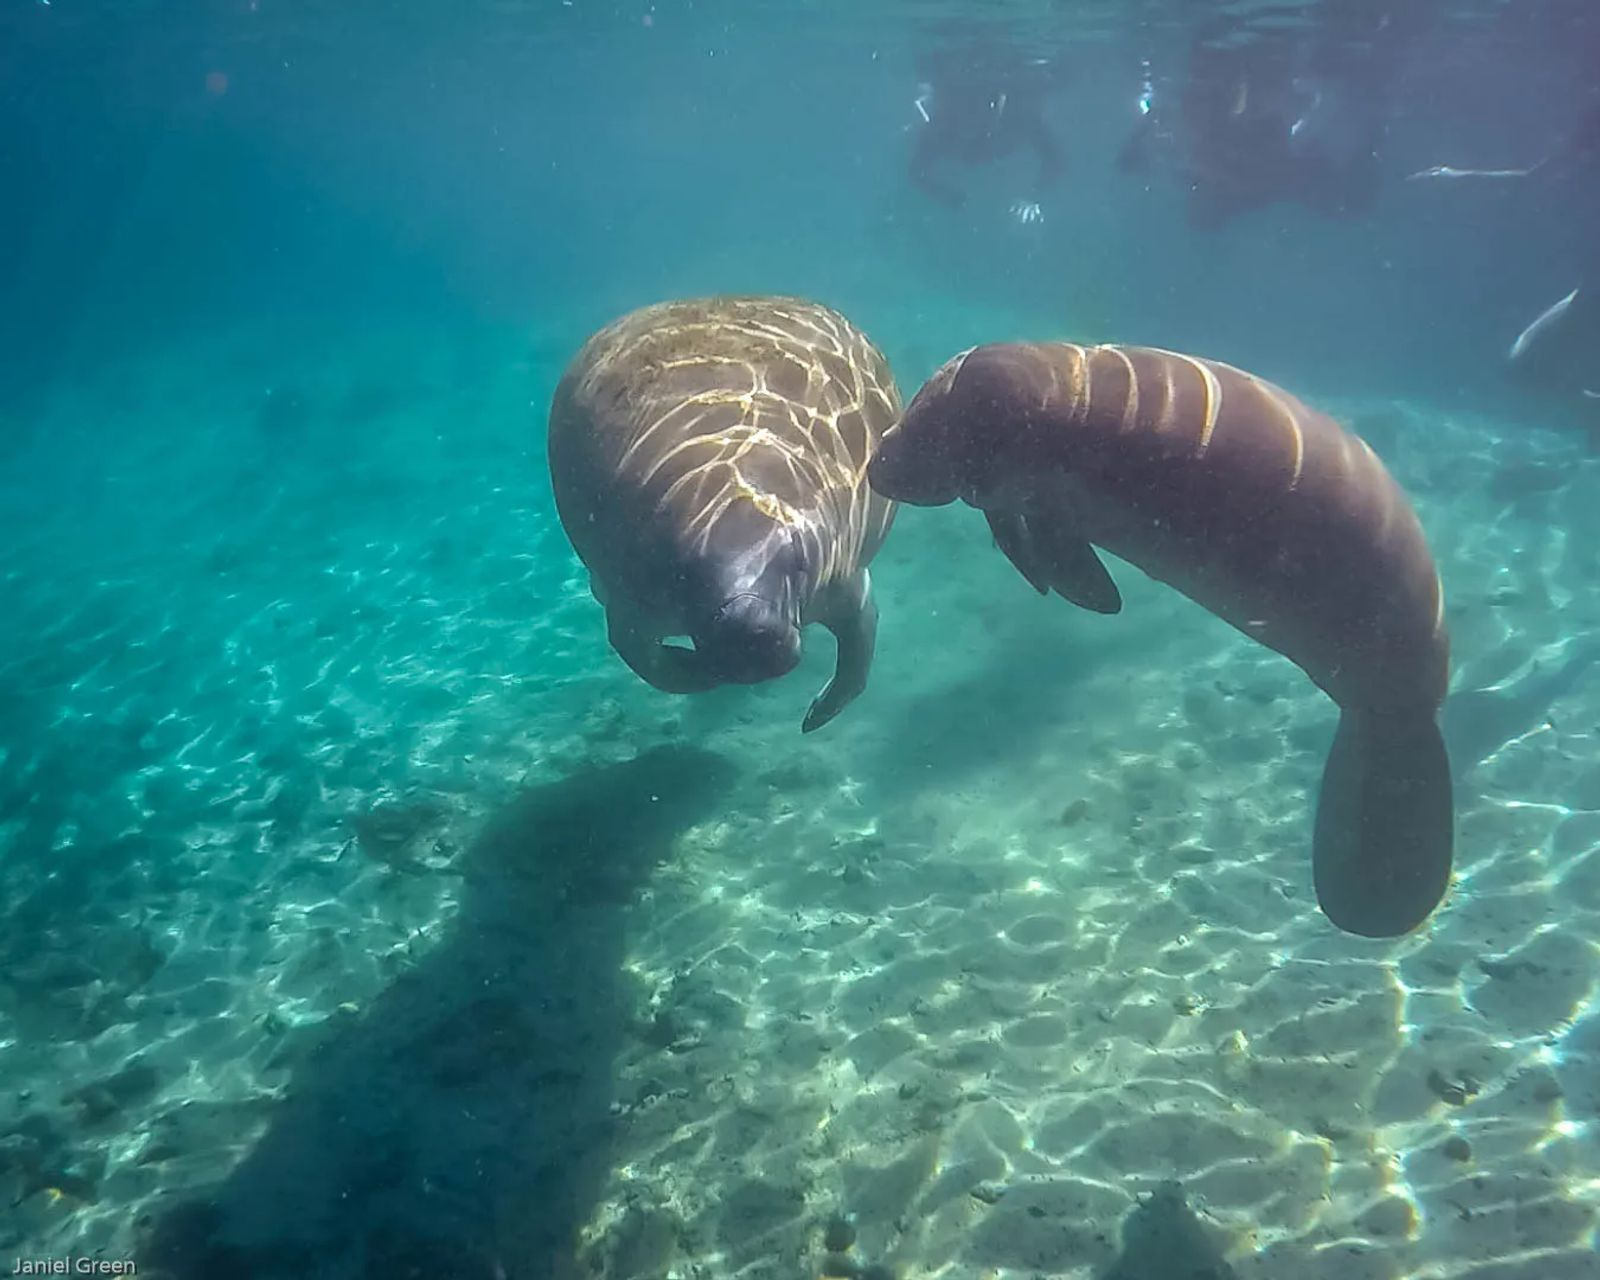 Swim with manatees, a month to month travel guide